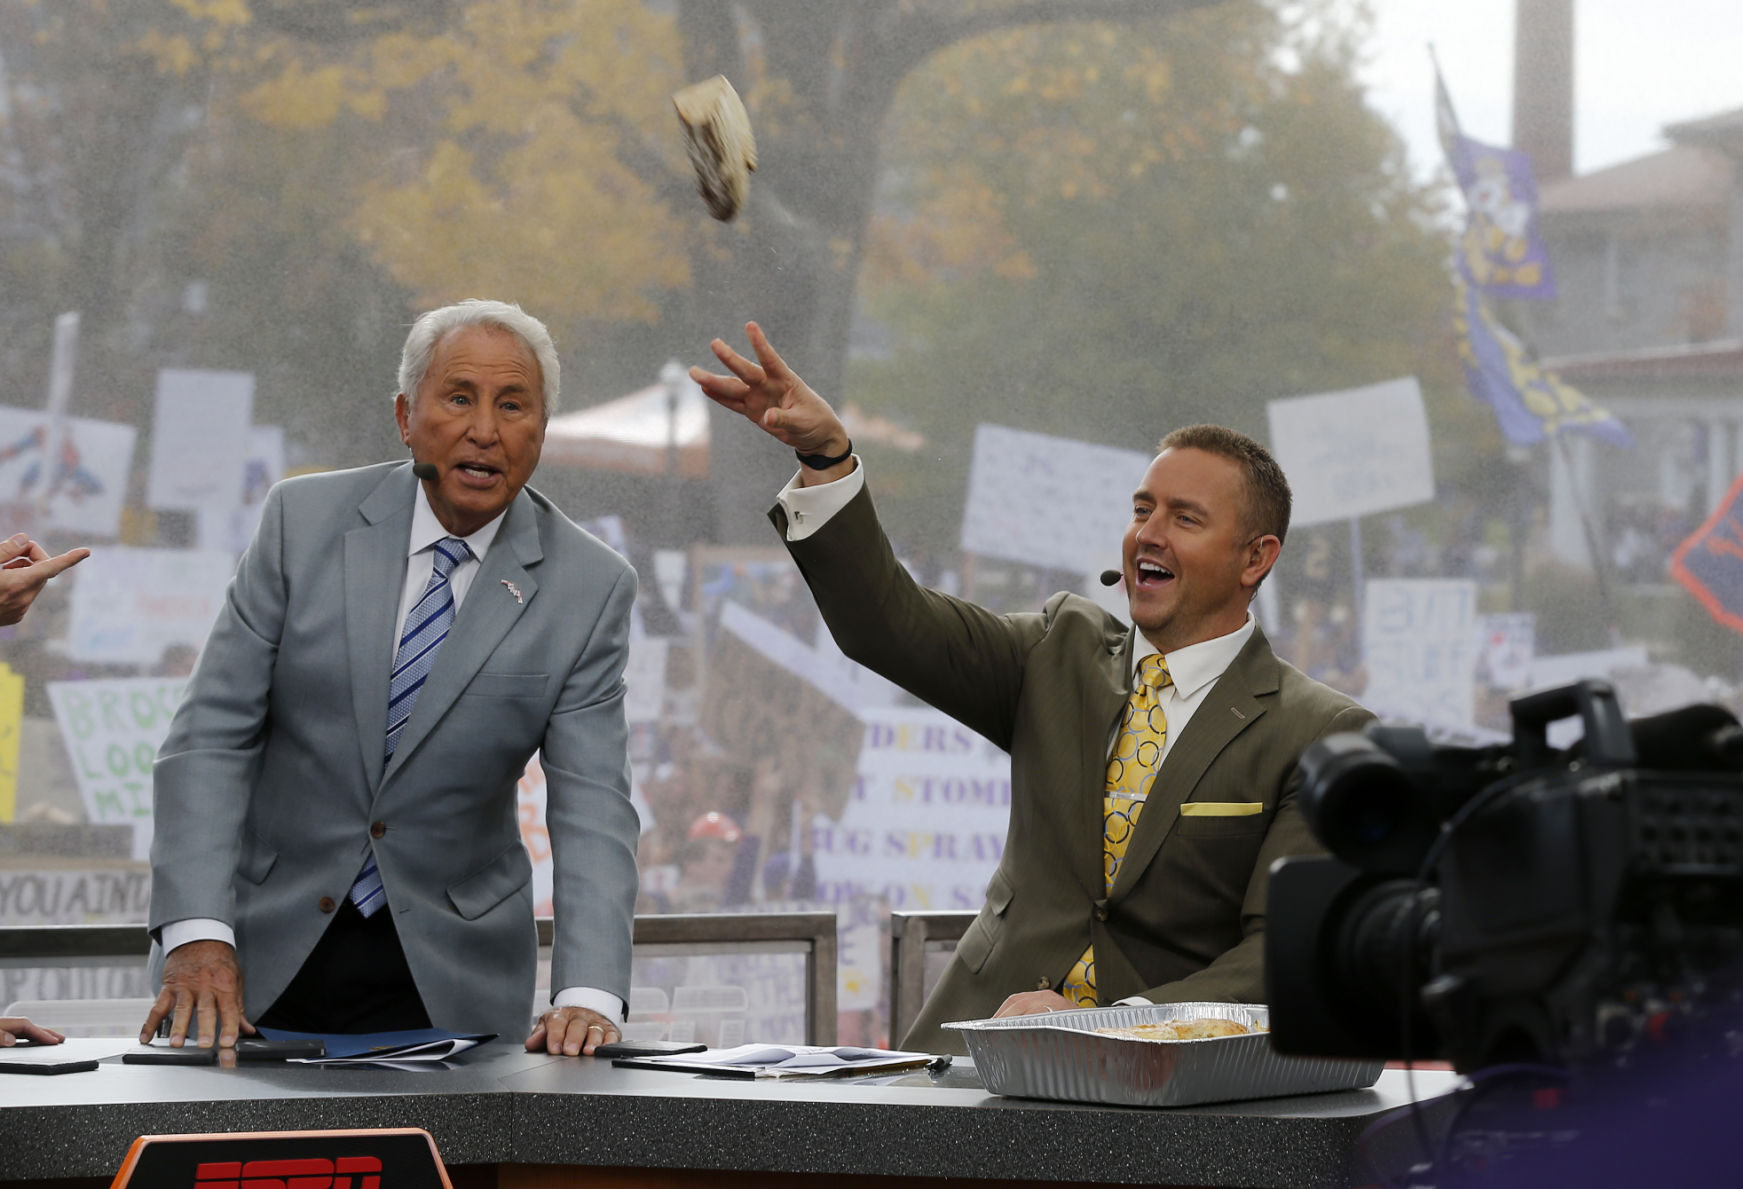 ESPN's College Gameday returning to James Madison